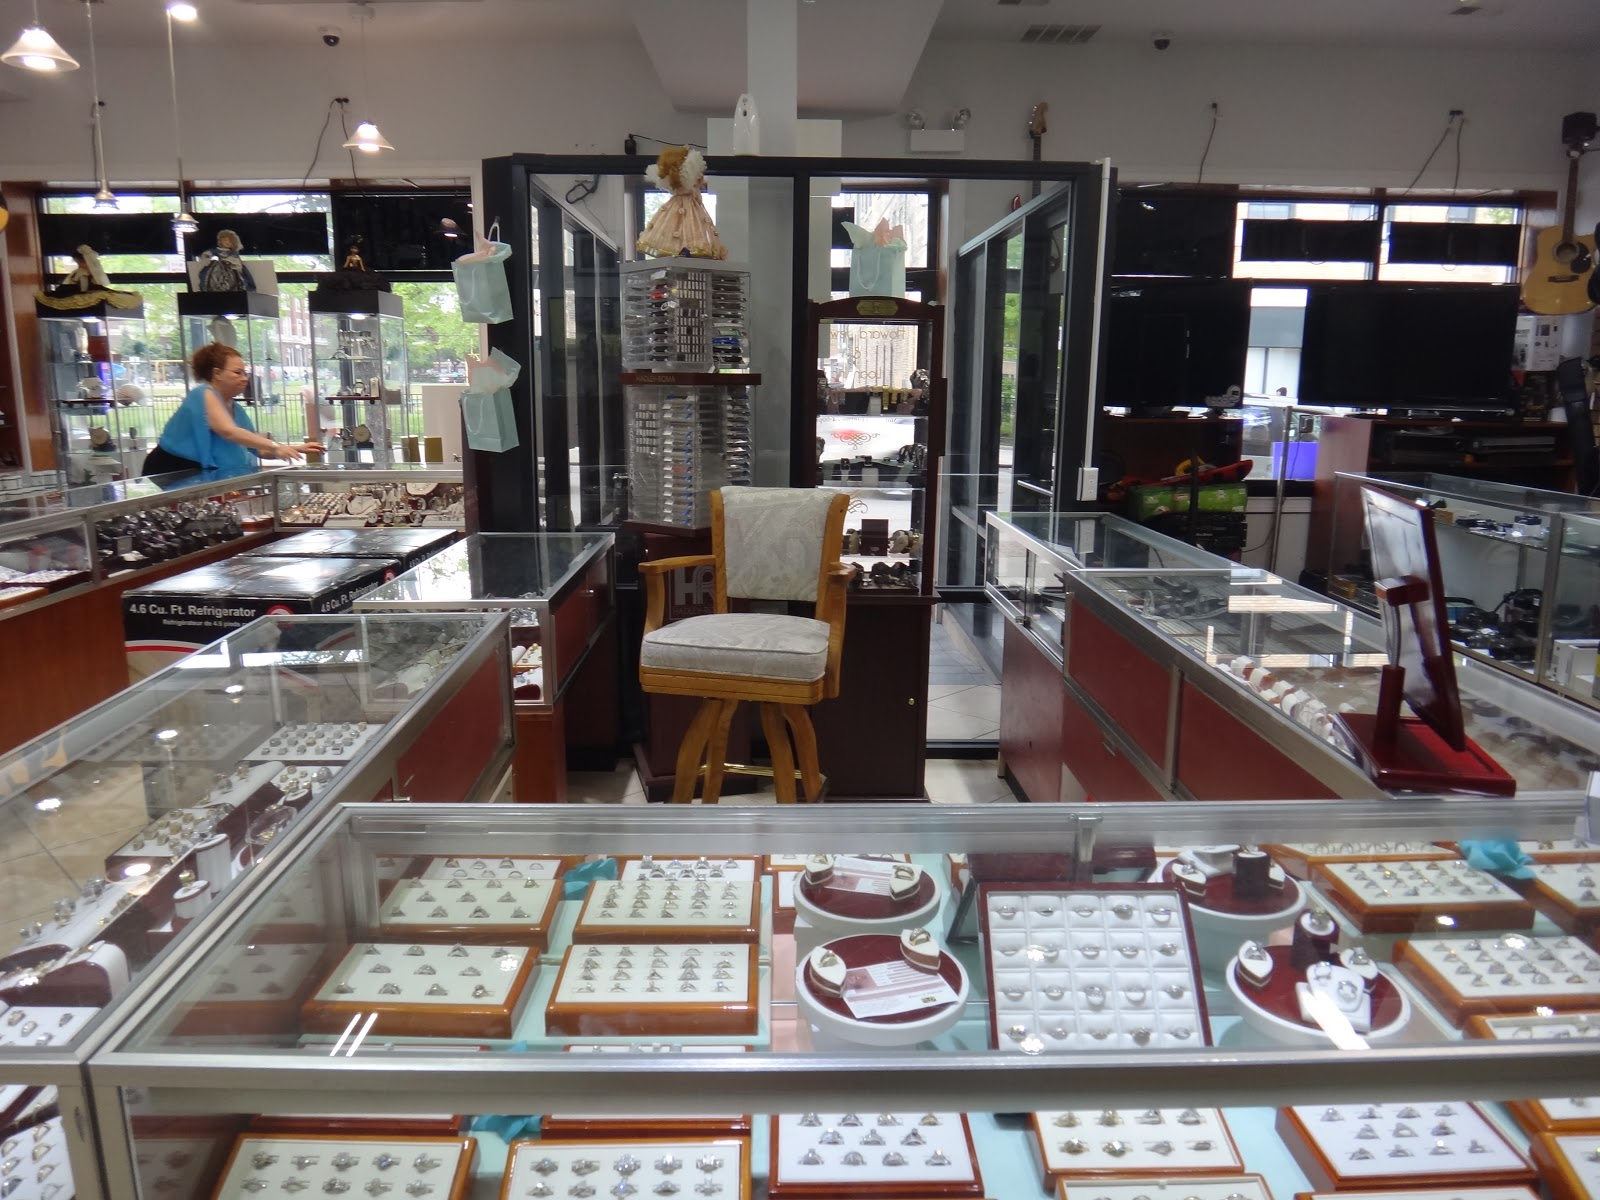 rogers park chamber of commerce howard jewelry and loan